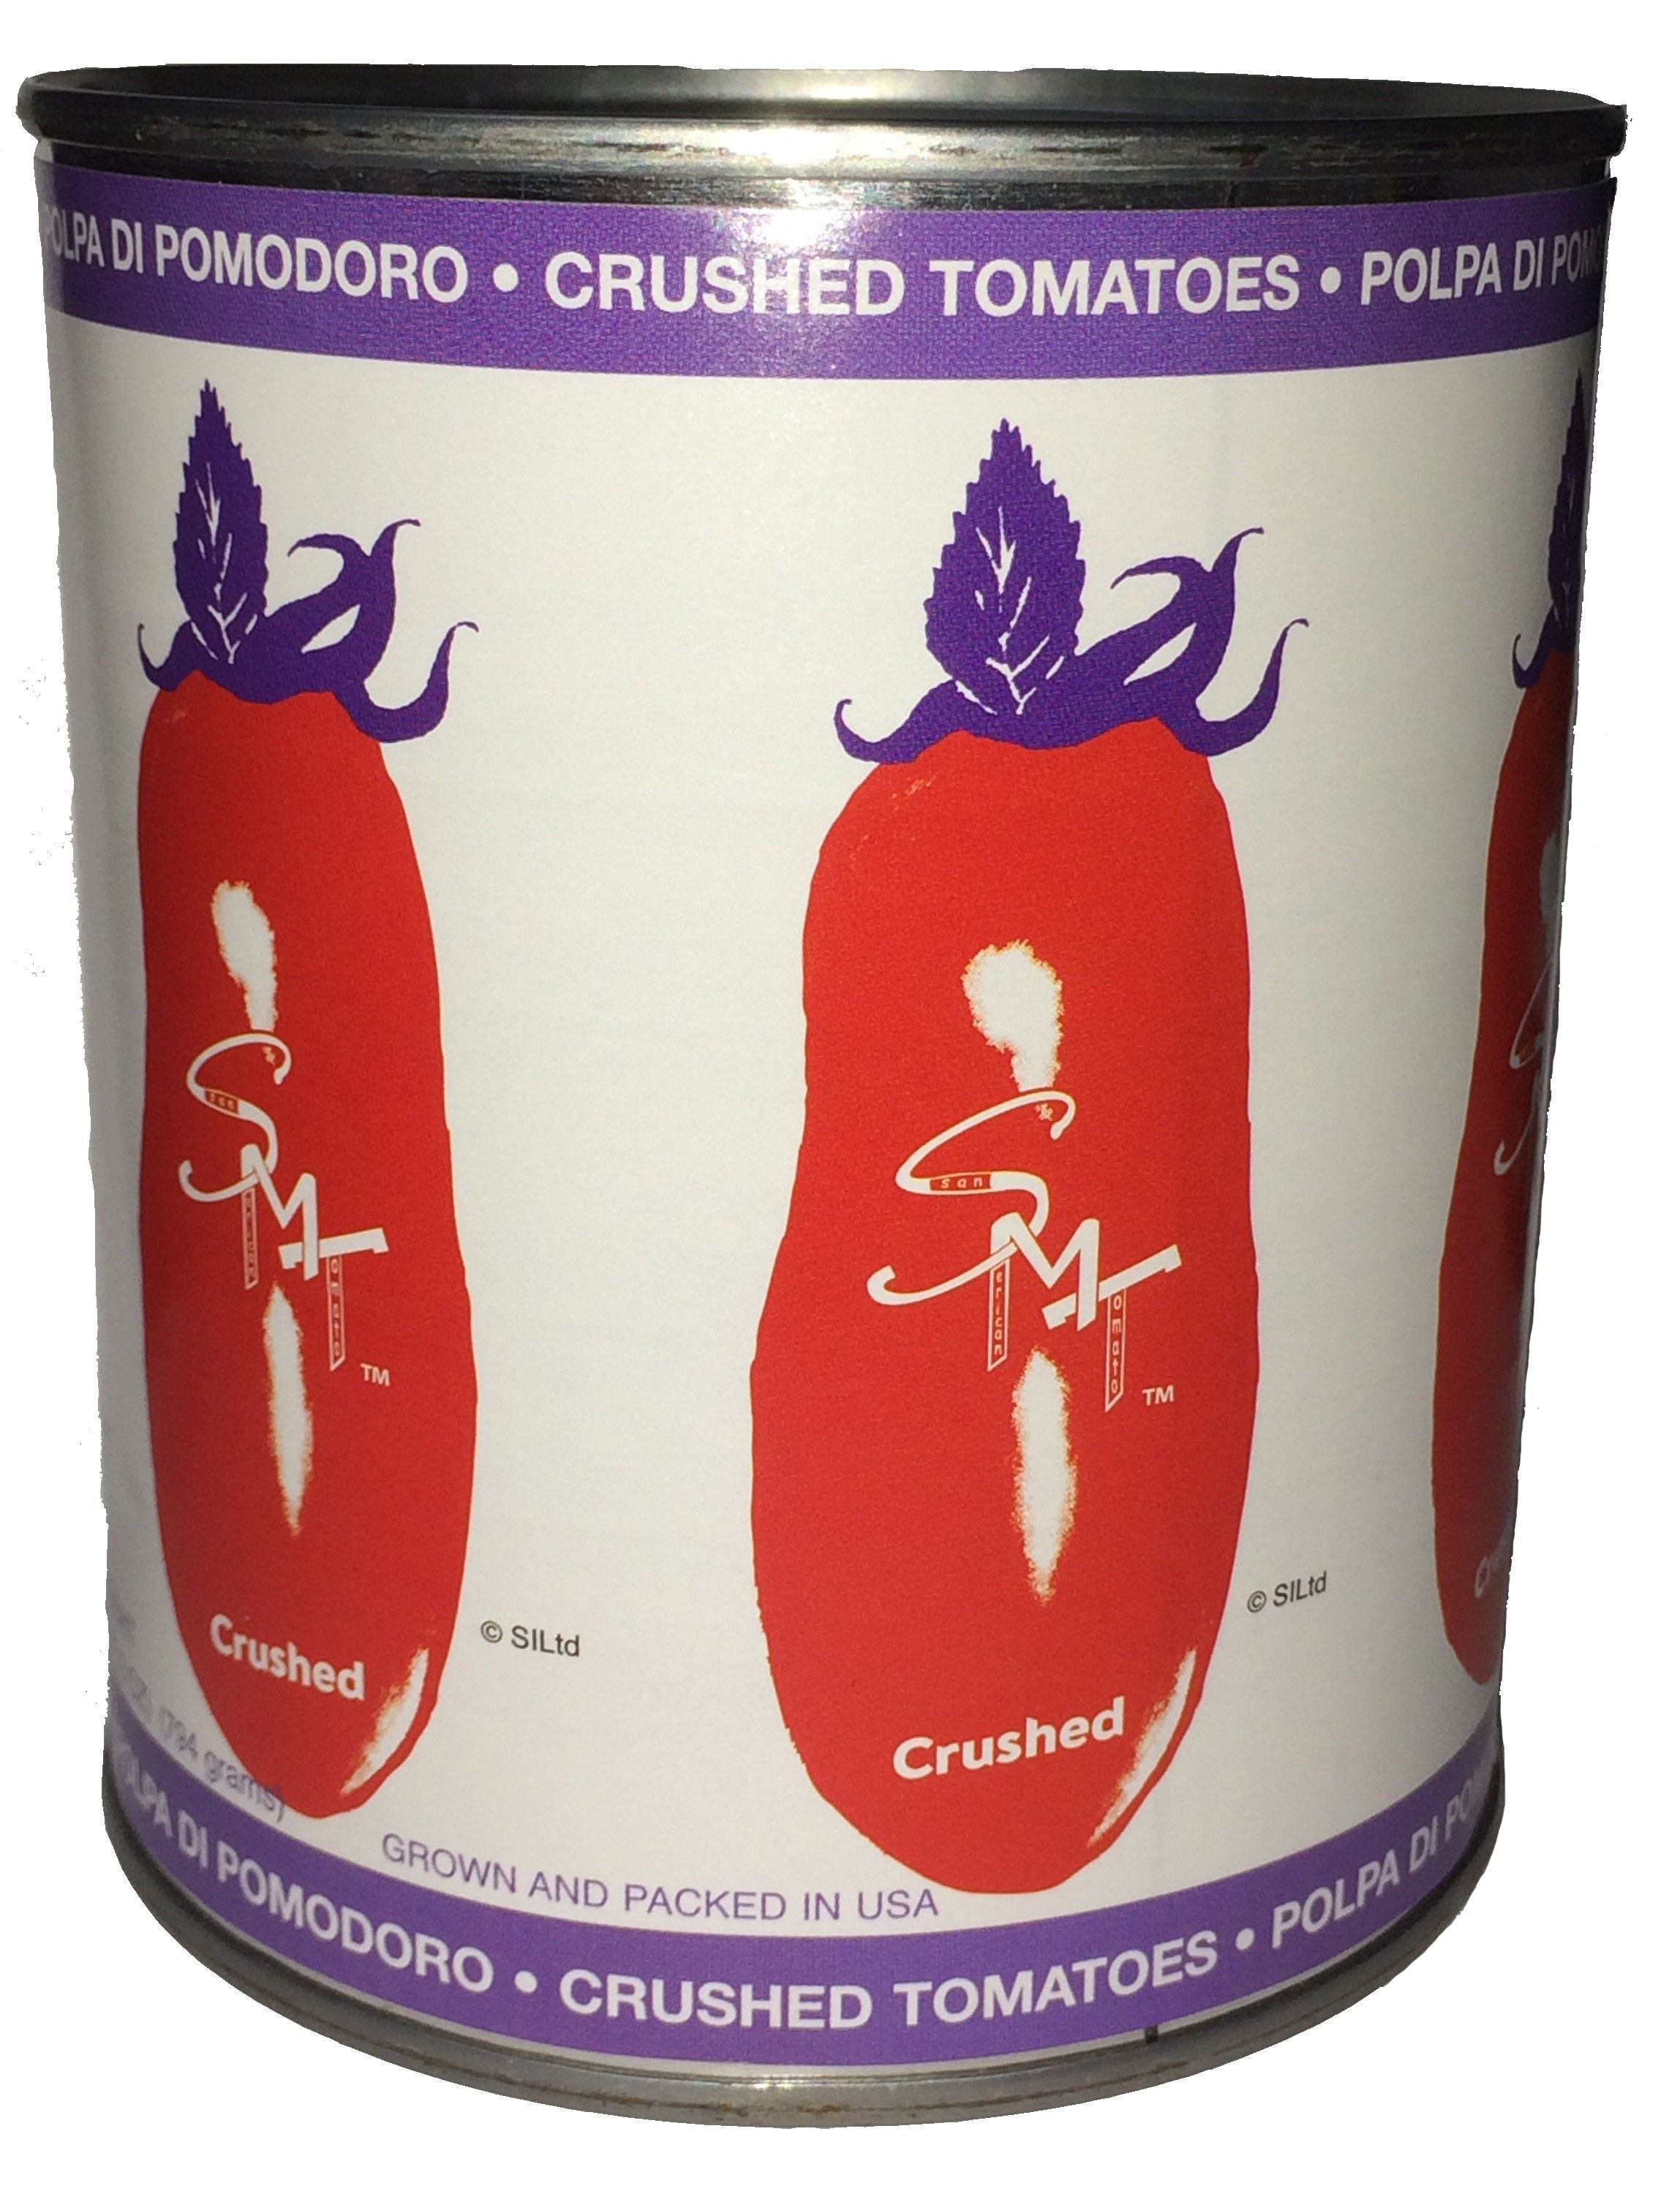 Smt San Marzano Style Crushed Tomatoes 28 Oz Pack Of 6 Crushed Tomatoes Tomato Marzano